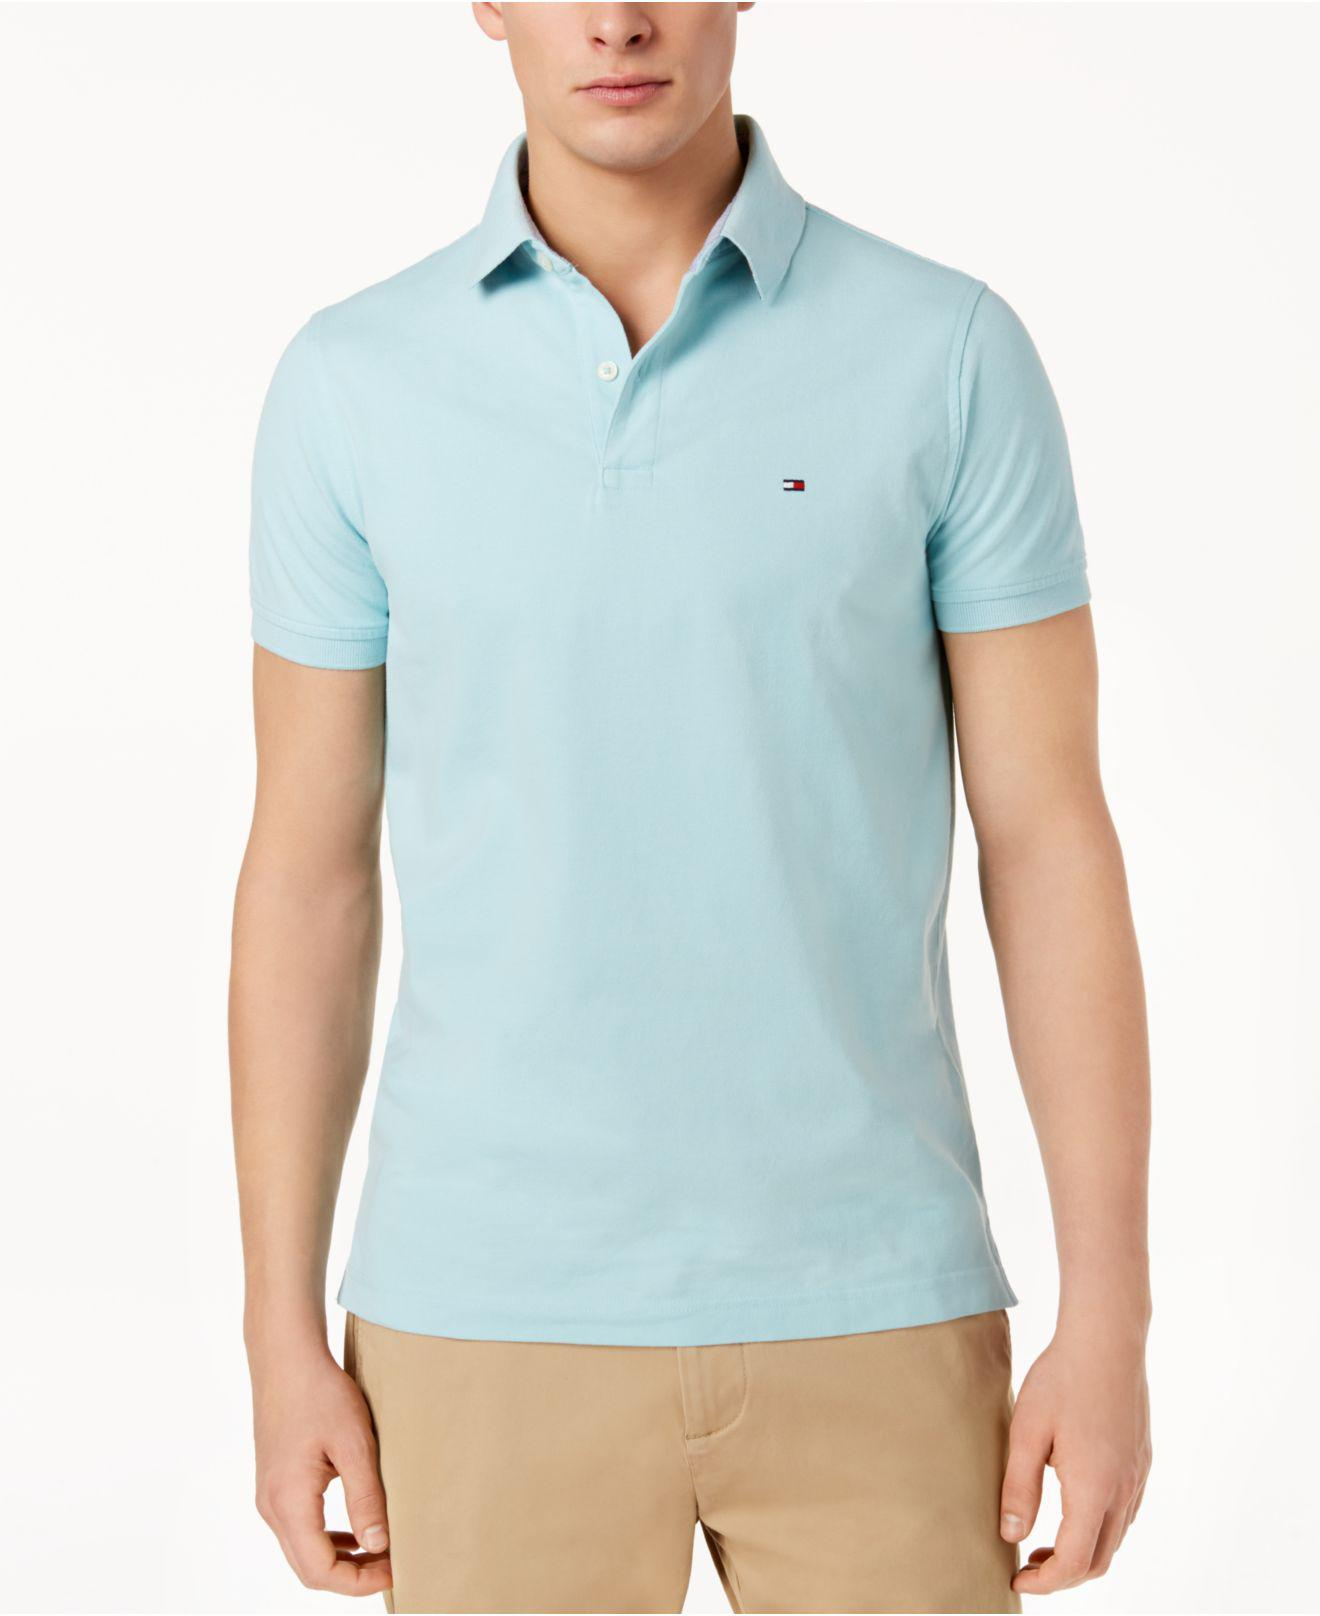 c537e8d2bf517 Lyst - Tommy Hilfiger Slim-fit Stretch Logo Polo Shirt in Green for Men